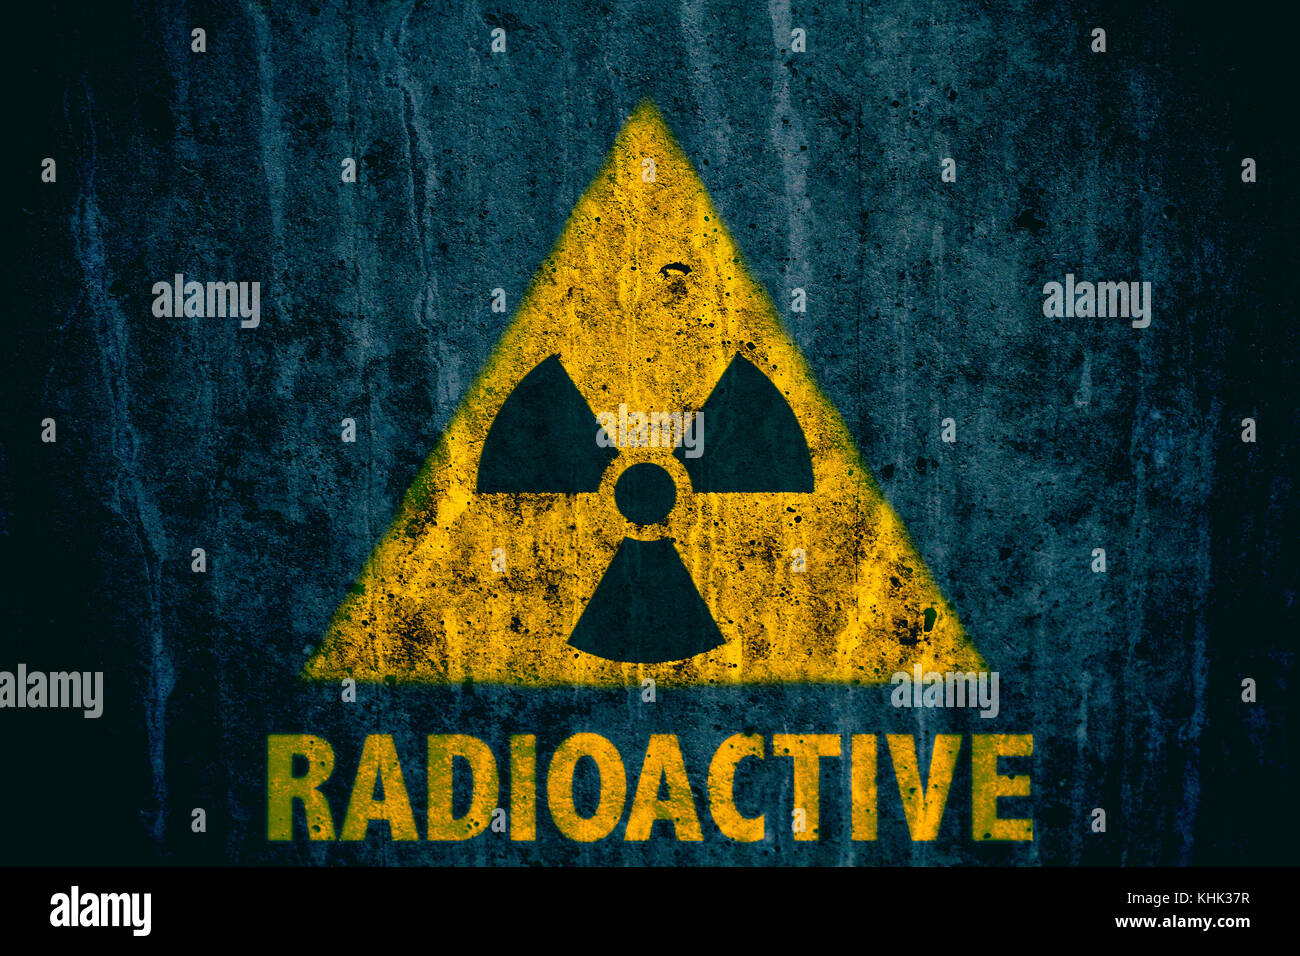 Triangular yellow and black radioactive ionizing radiation triangular yellow and black radioactive ionizing radiation danger symbol with word radioactive below painted on a massive concrete wall with dark ru buycottarizona Images